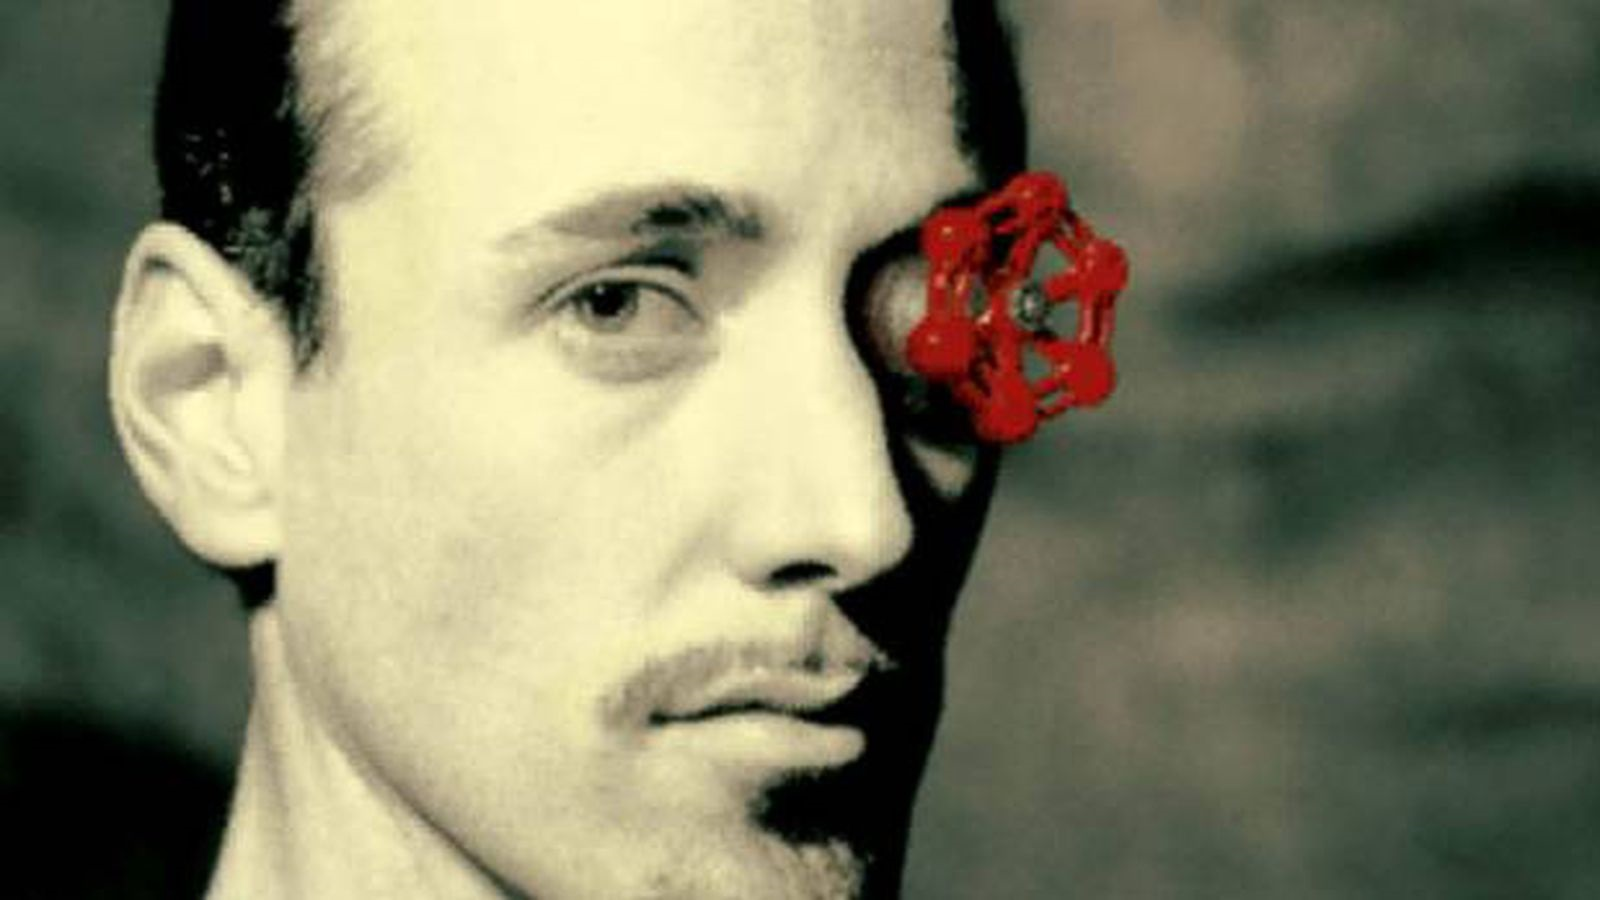 Sign me the heck up for Geoff Keighley's documentary on the past 10 years of Valve